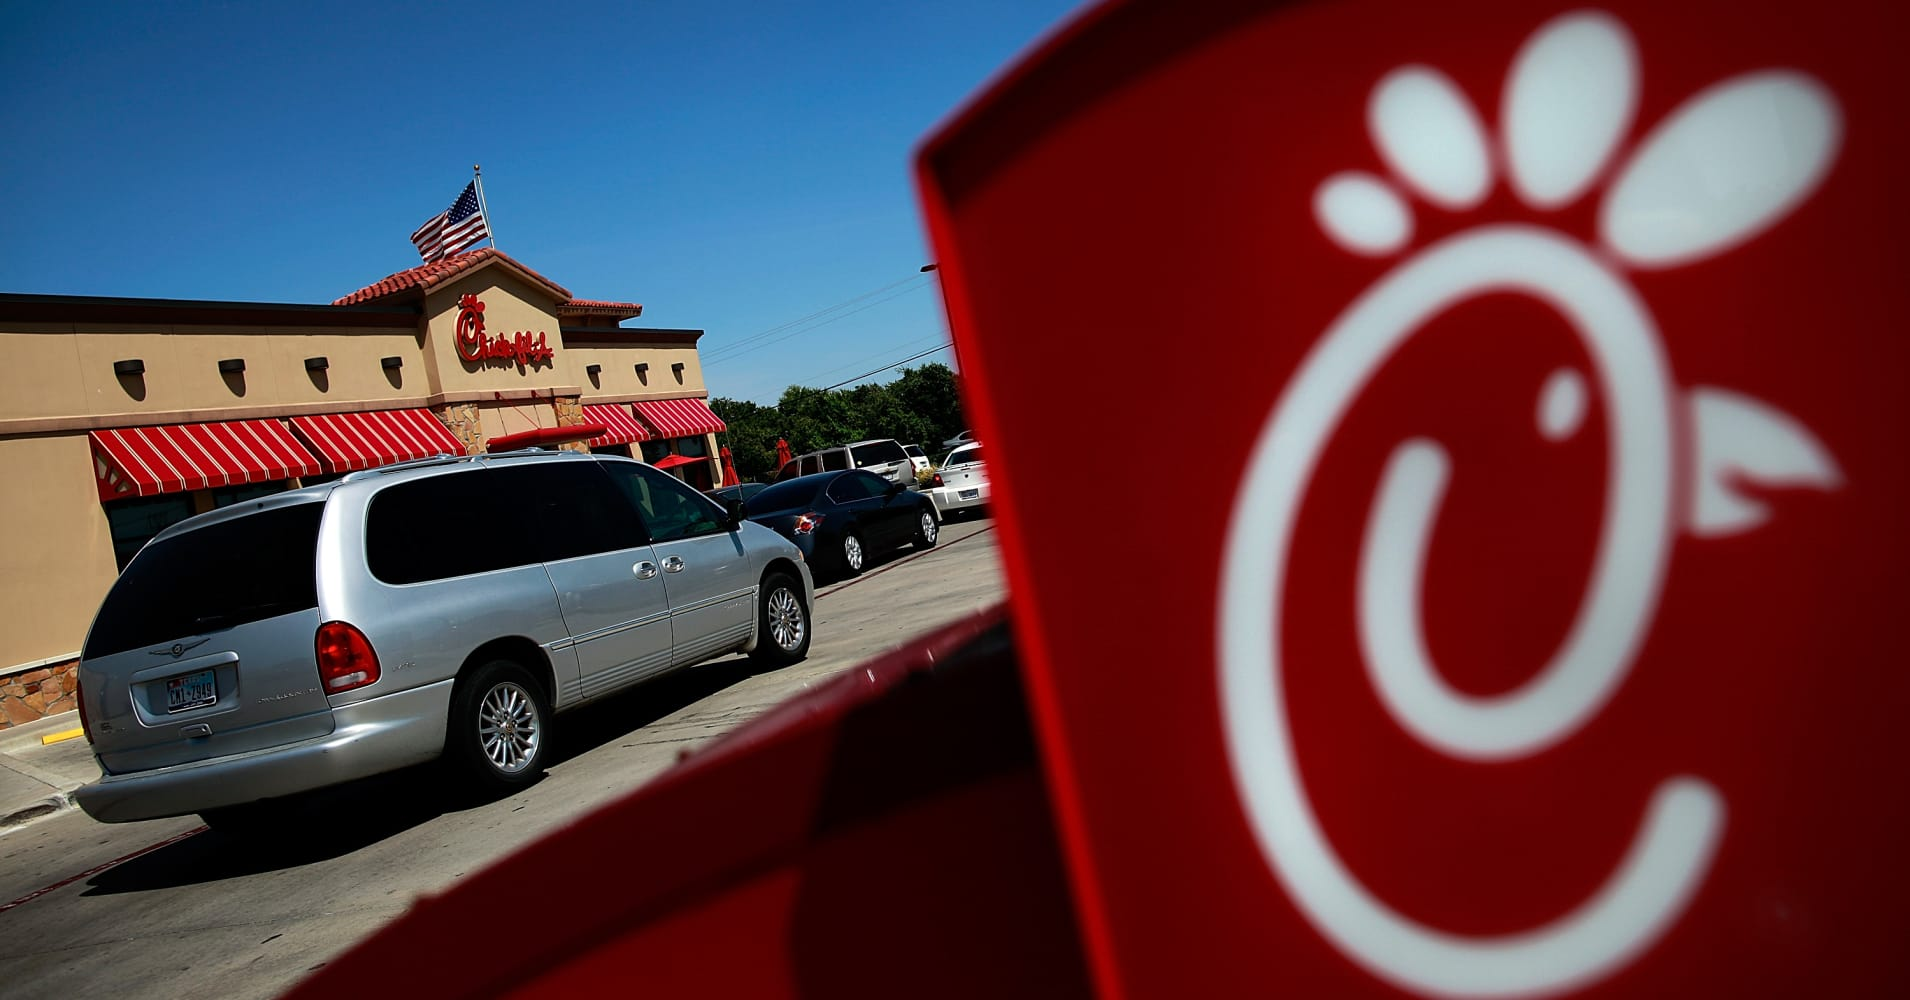 Chick-fil-A tests meal kits as first U.S. fast food chain to take on Blue Apron